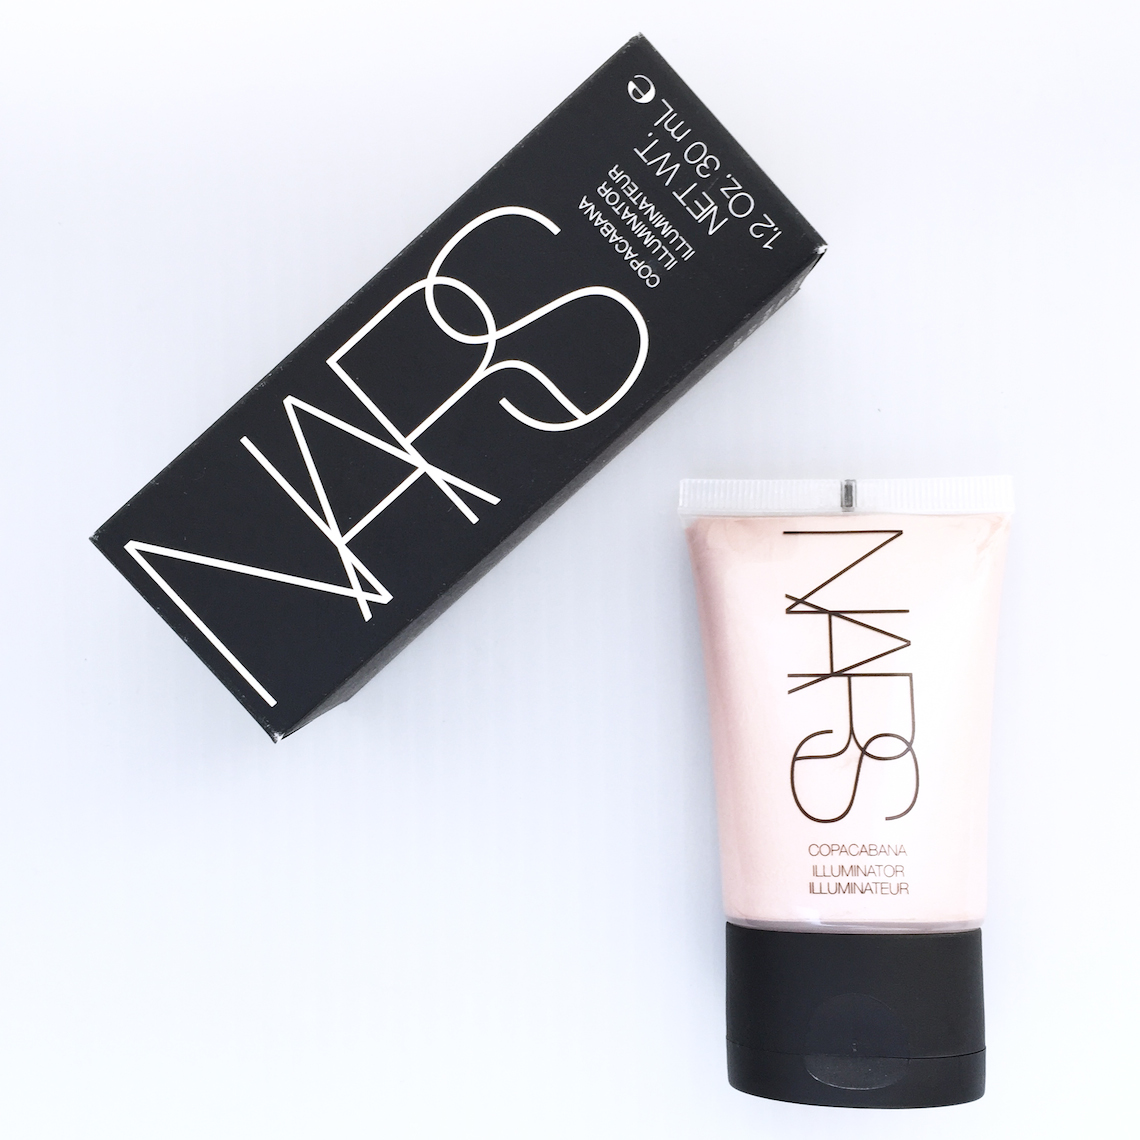 nars_copacabana_review1